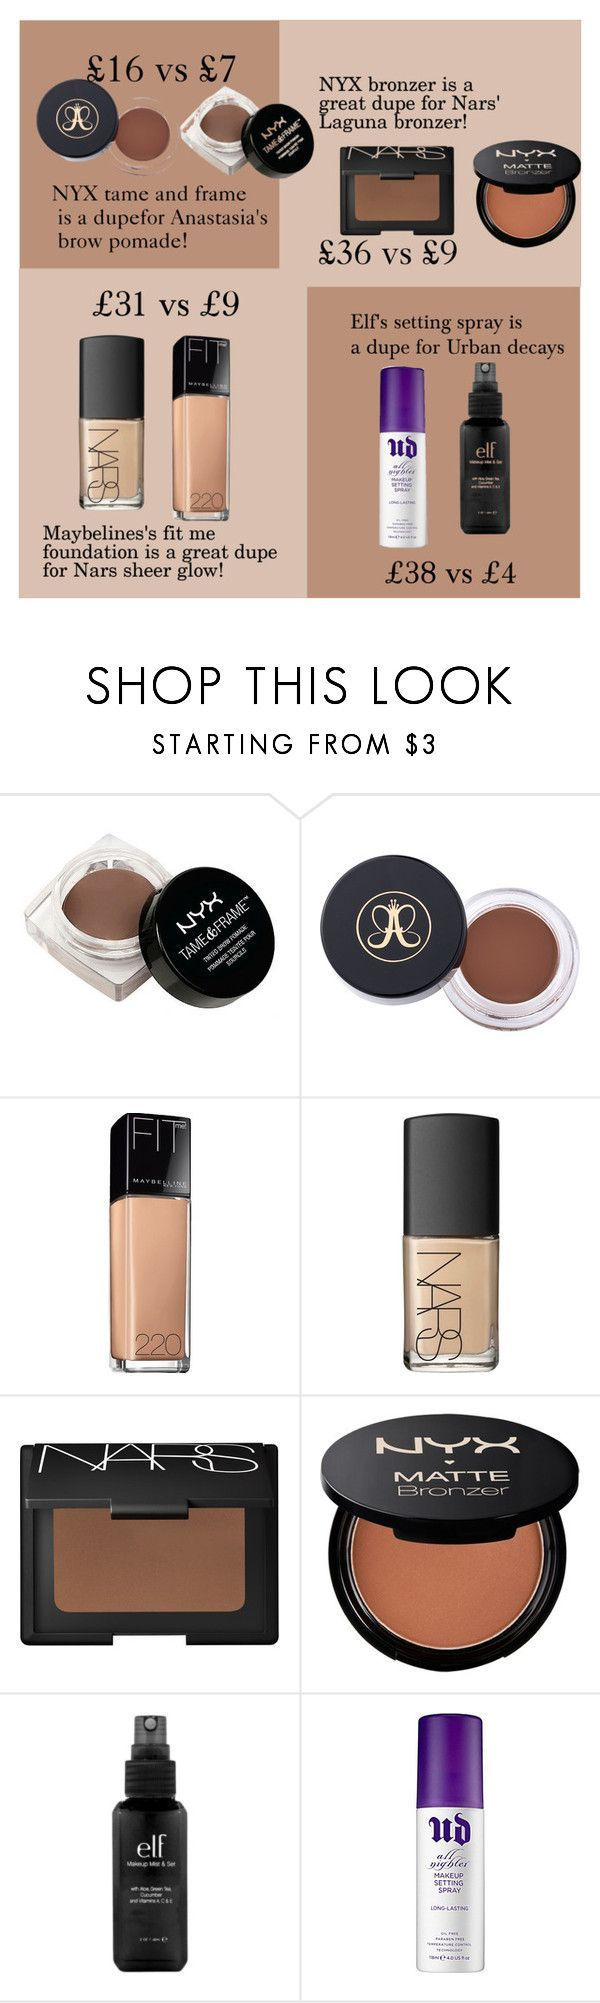 \Makeup dupes!\ by olidys liked on Polyvore featuring beauty NYX Maybelline NARS Cosmetics e.l.f. Urban Decay and beautydupes